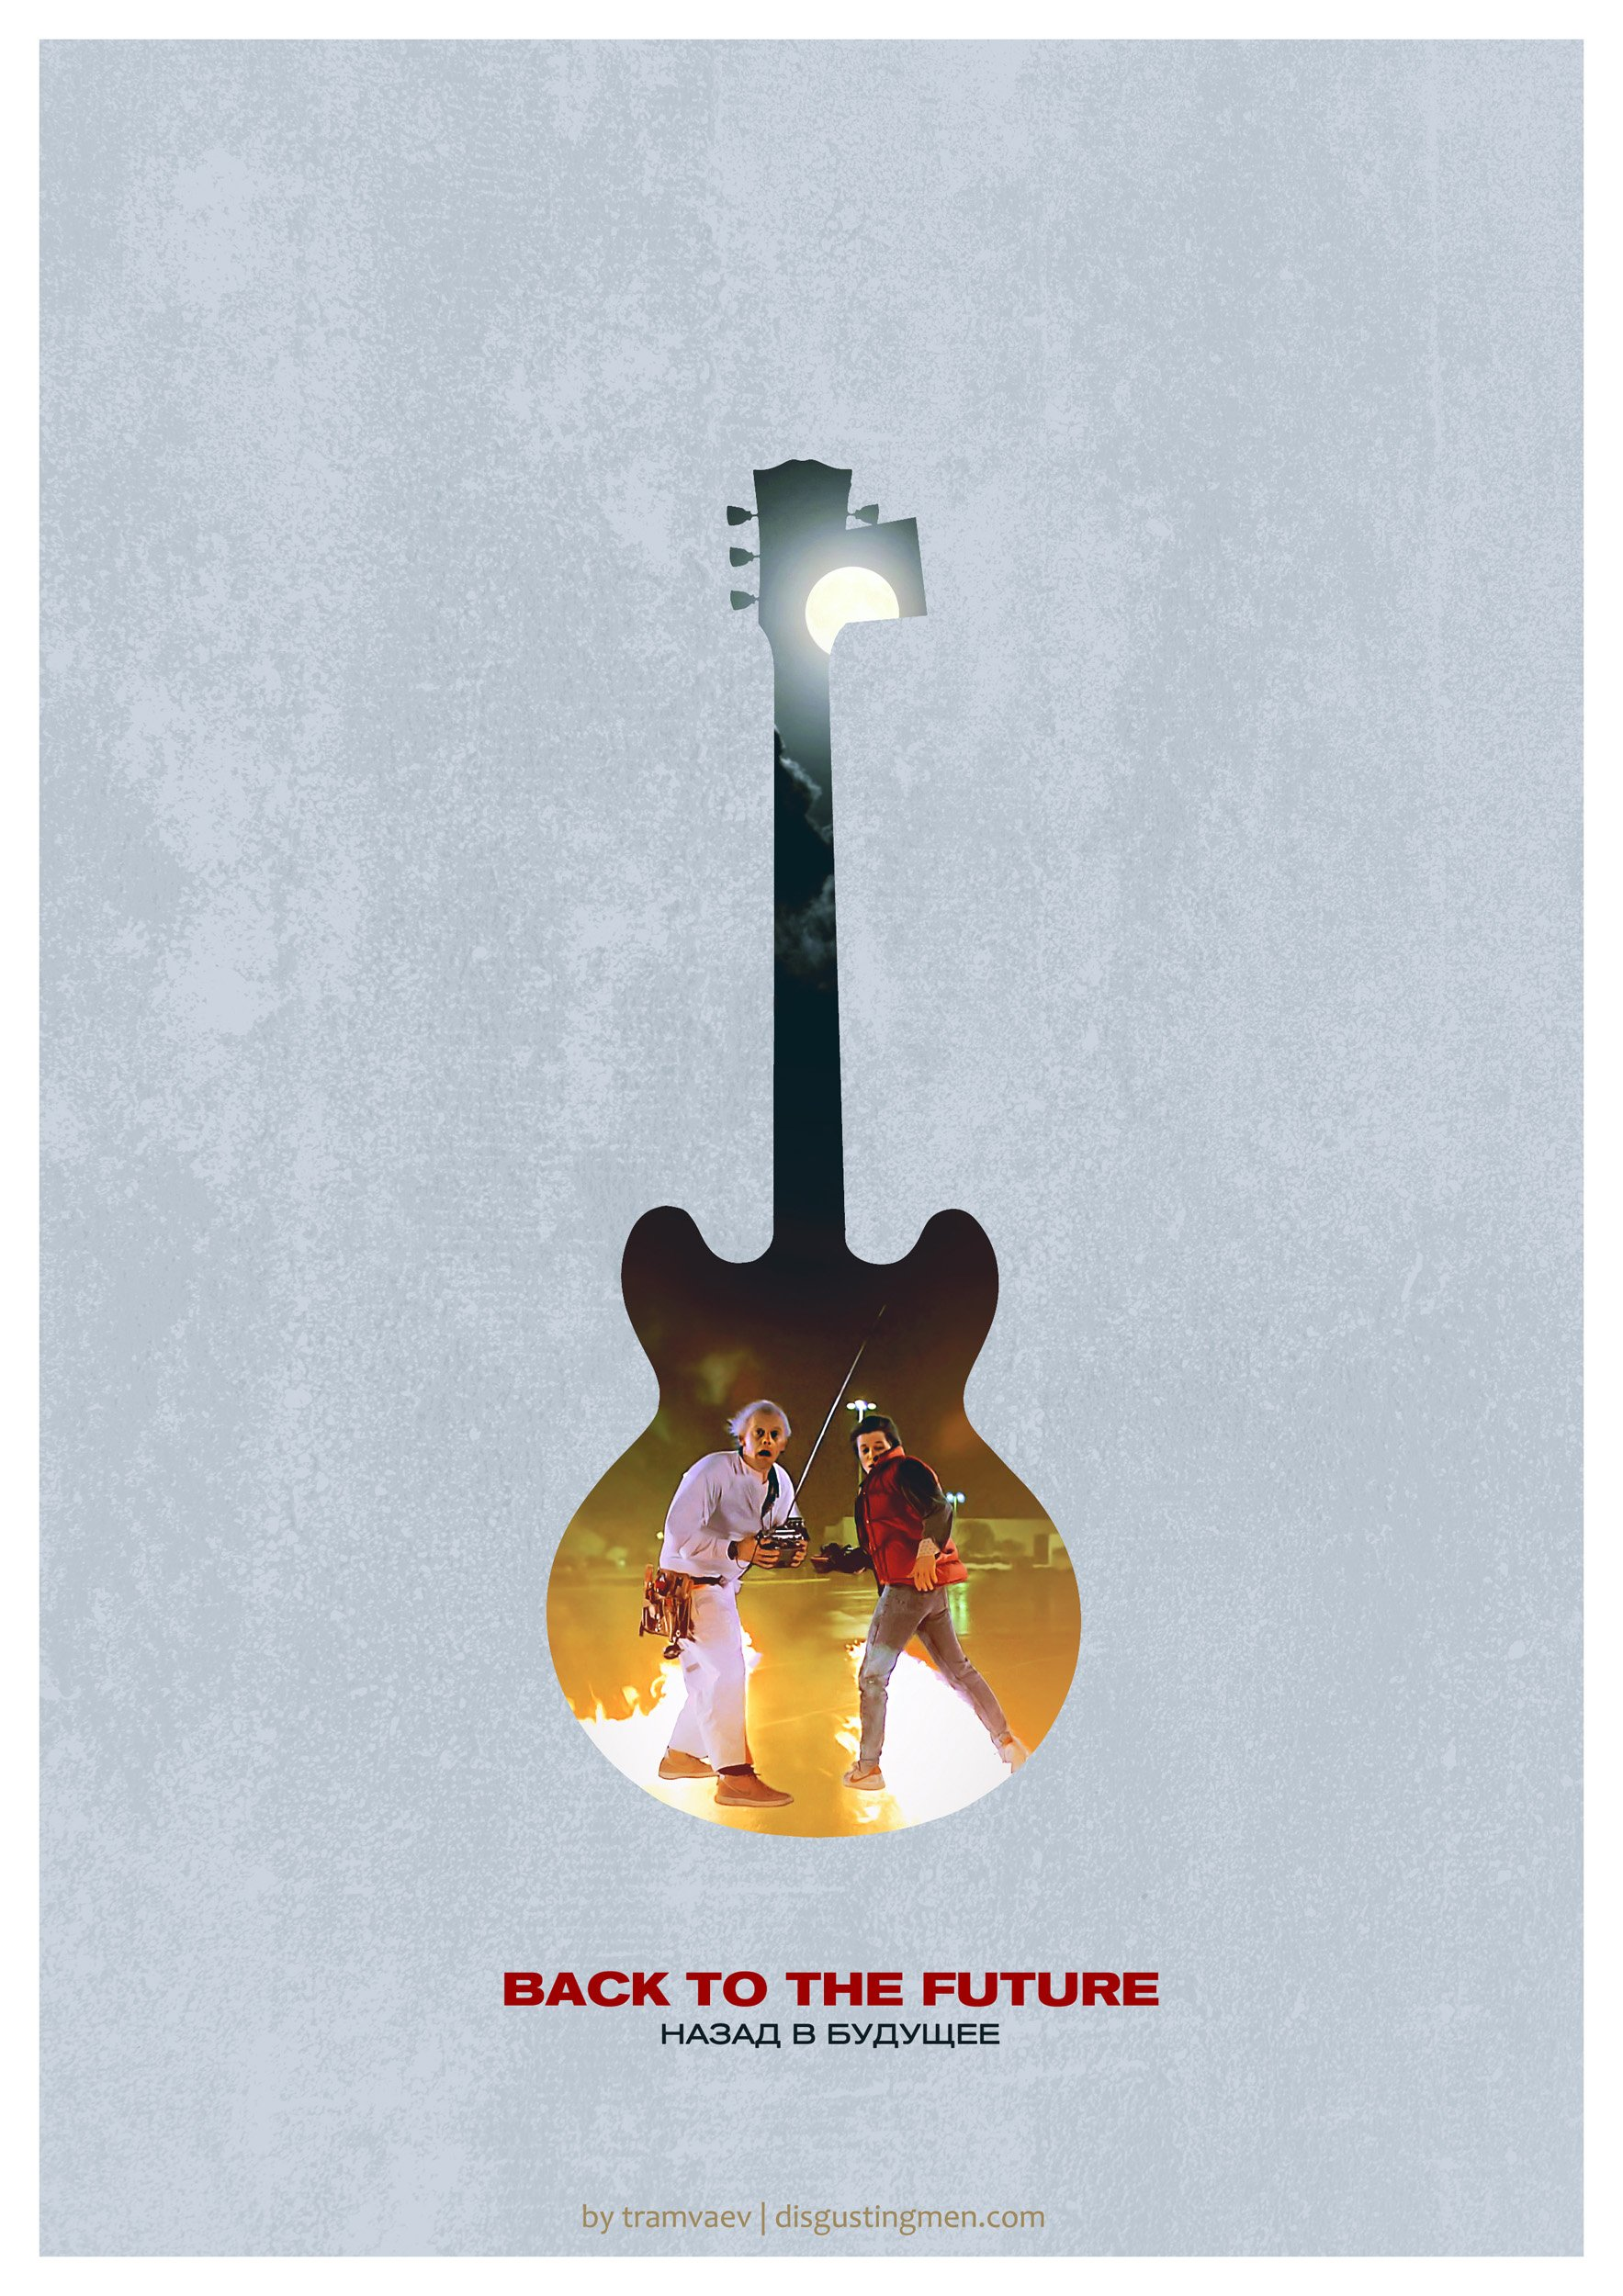 Back to the future gibson es гитары из кино знаменитые